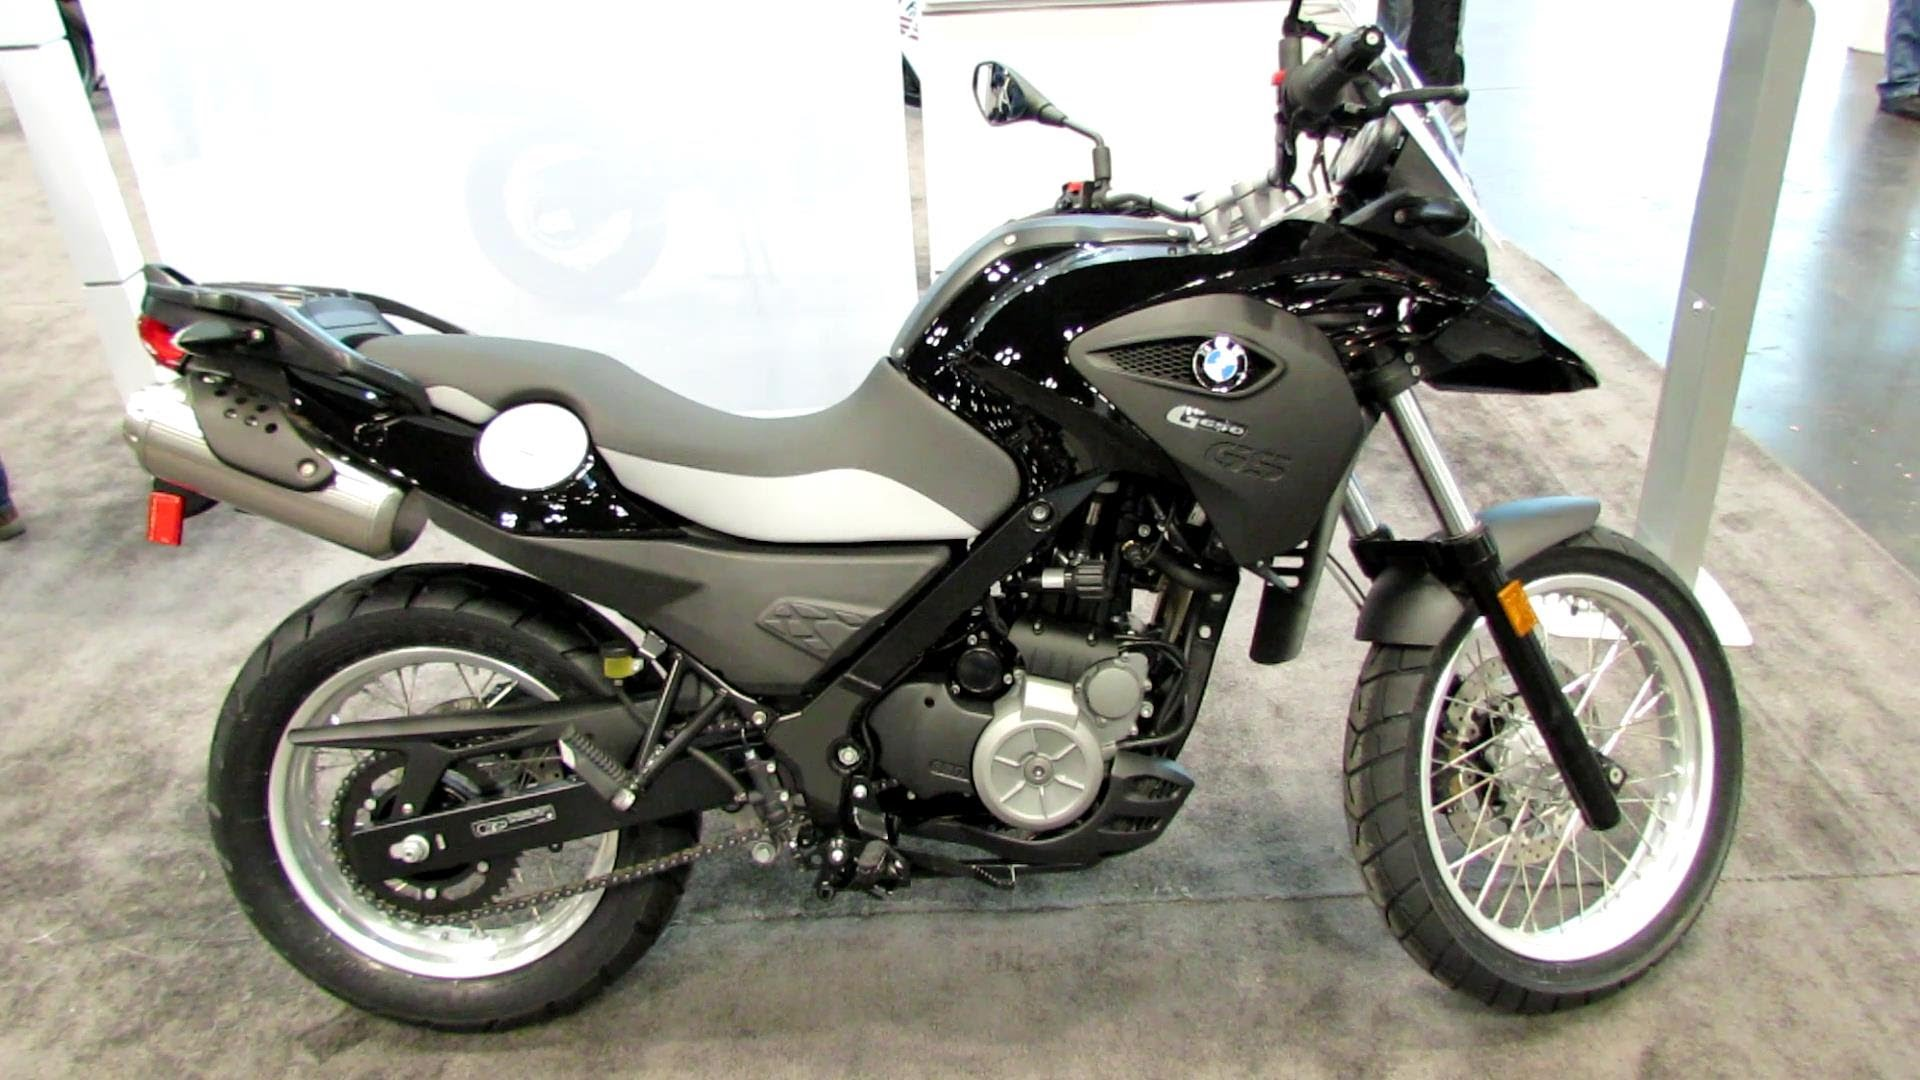 2014 bmw g 650 gs pics specs and information. Black Bedroom Furniture Sets. Home Design Ideas